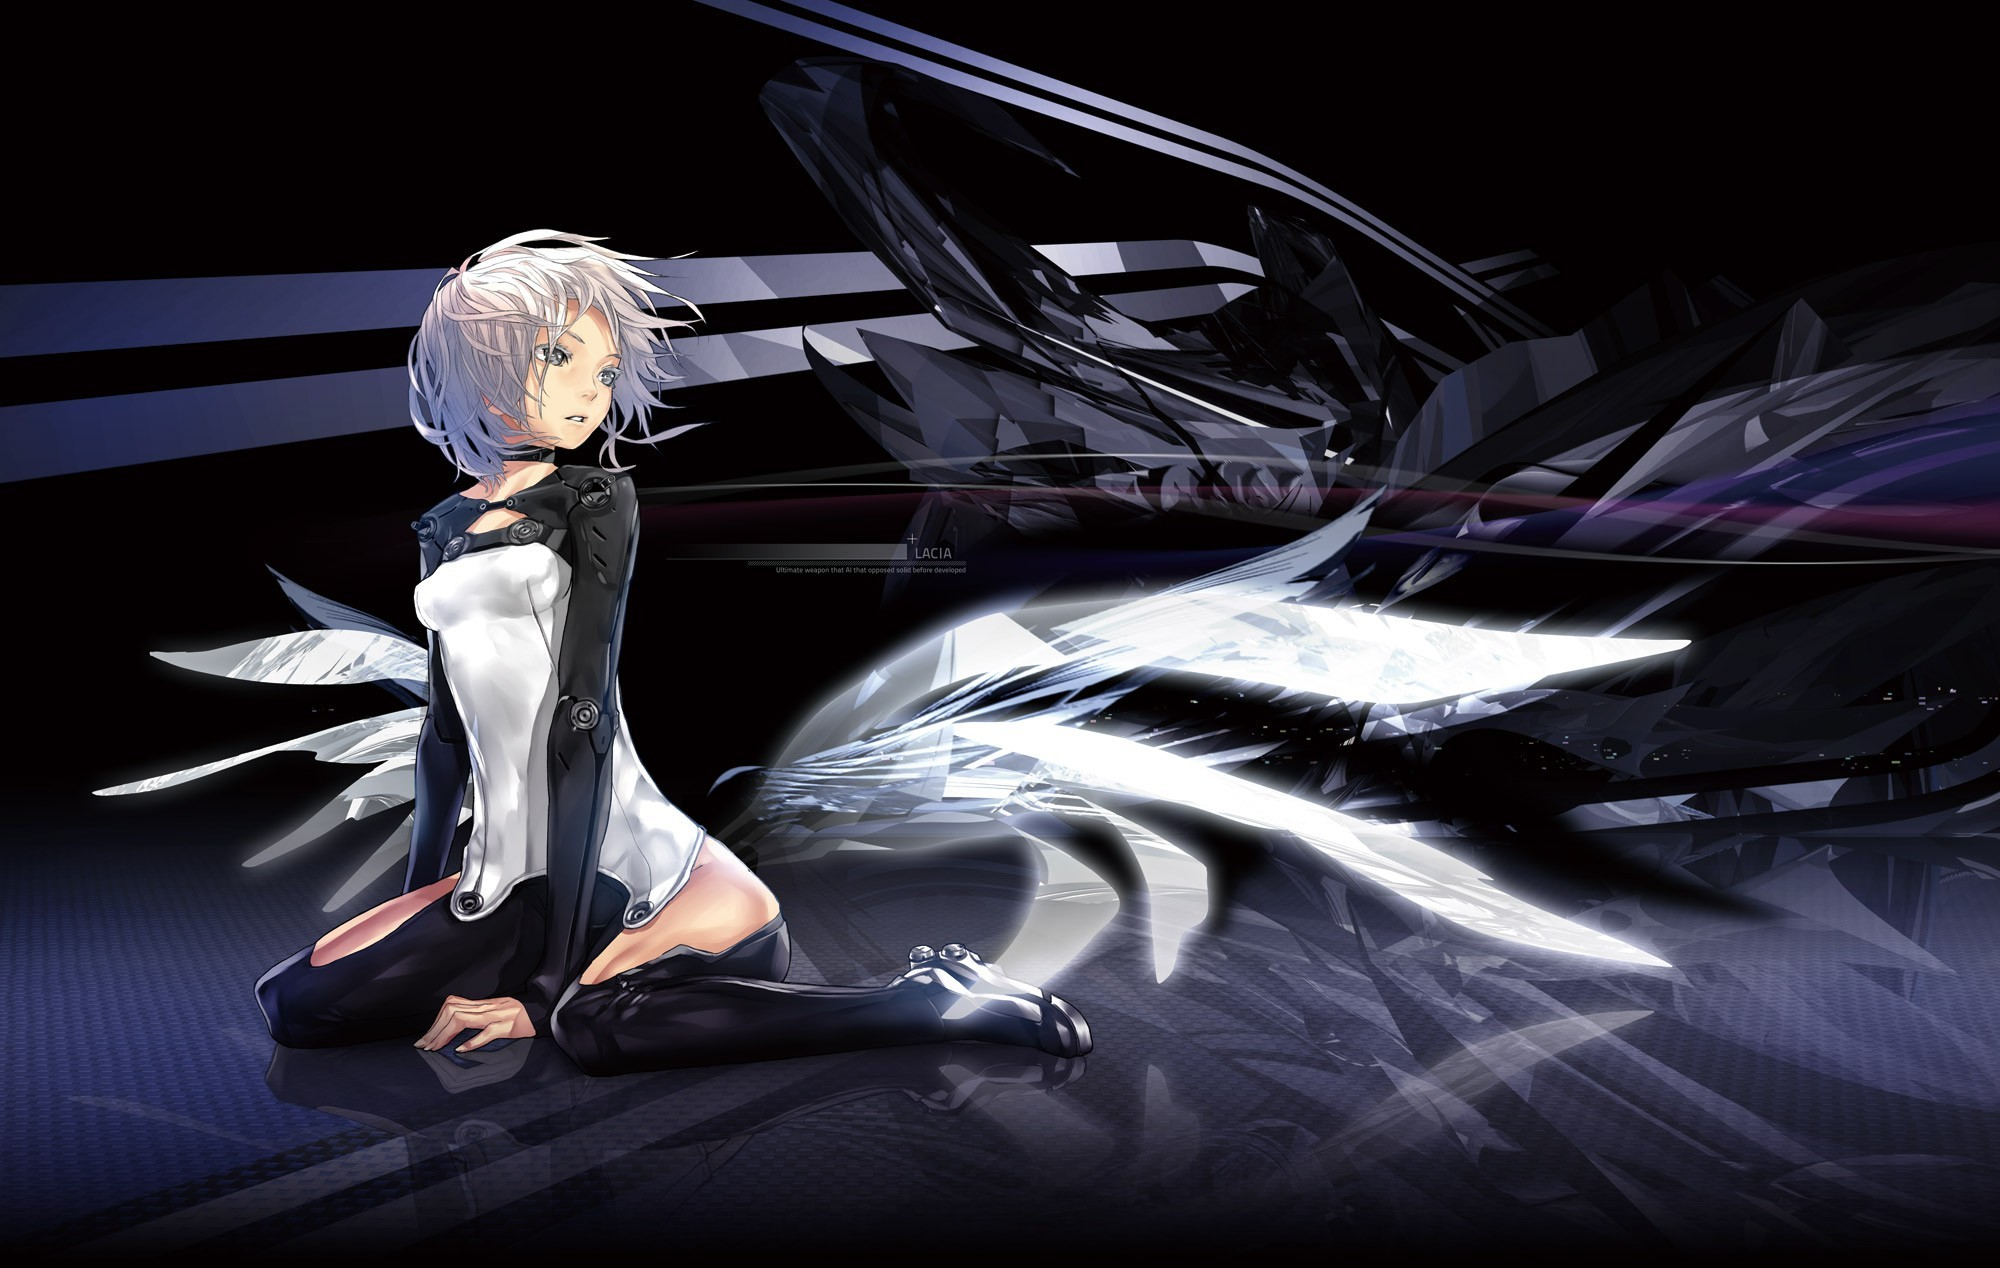 wings futuristic bodysuits Anime HD Wallpaper